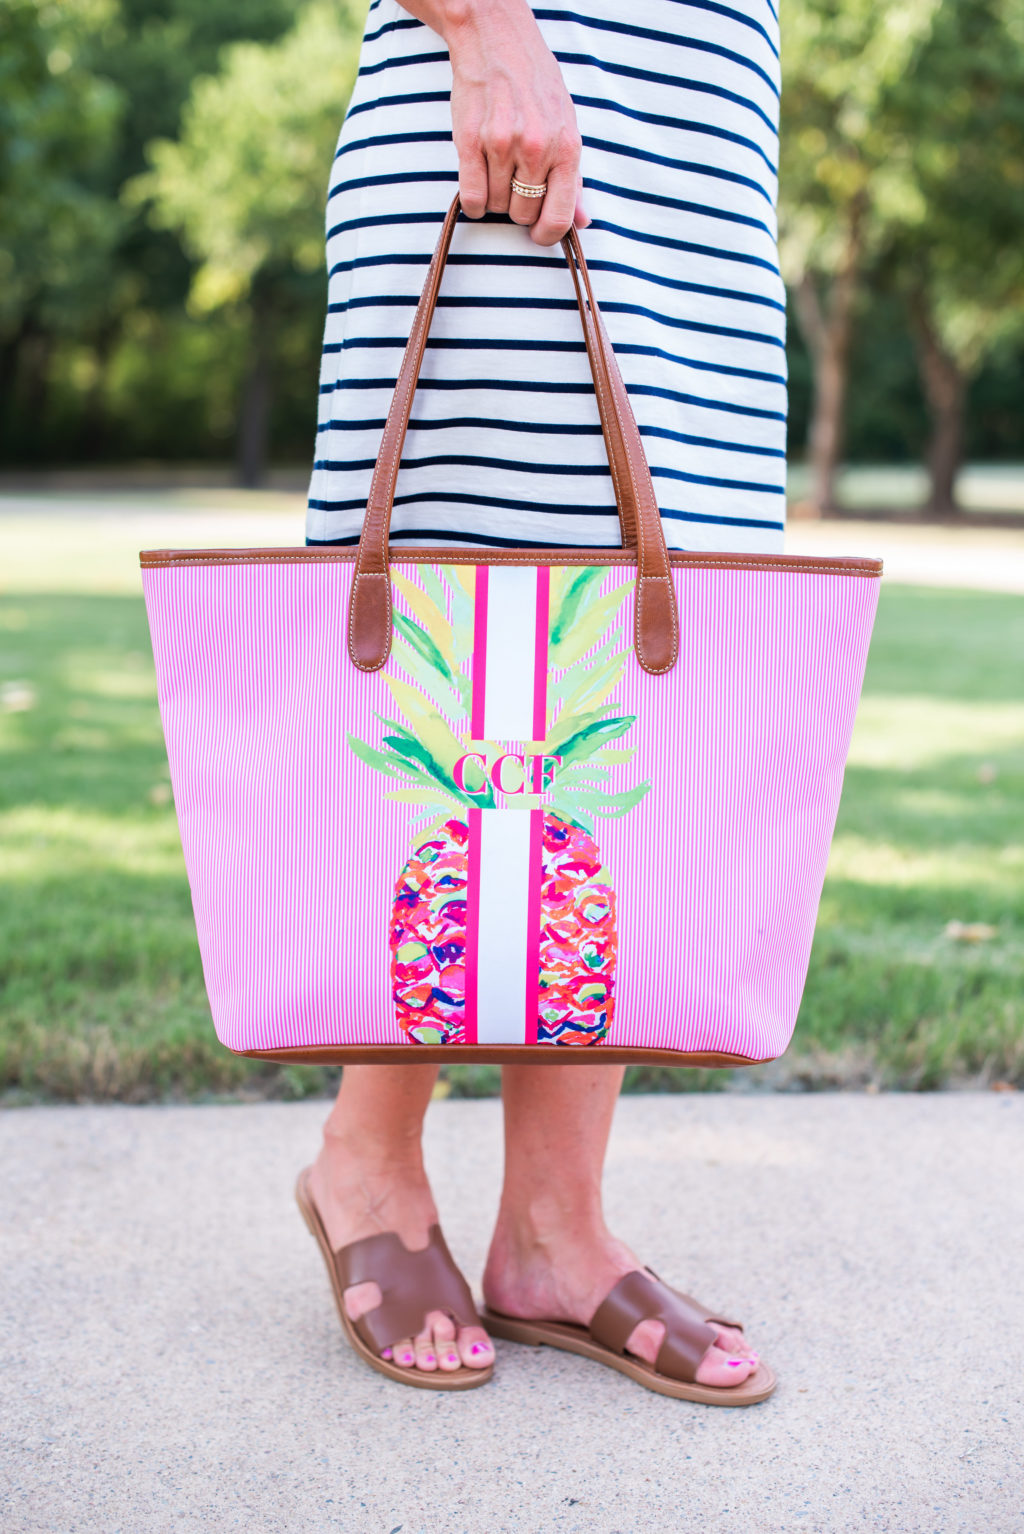 barrington pineapple monogrammed tote bag